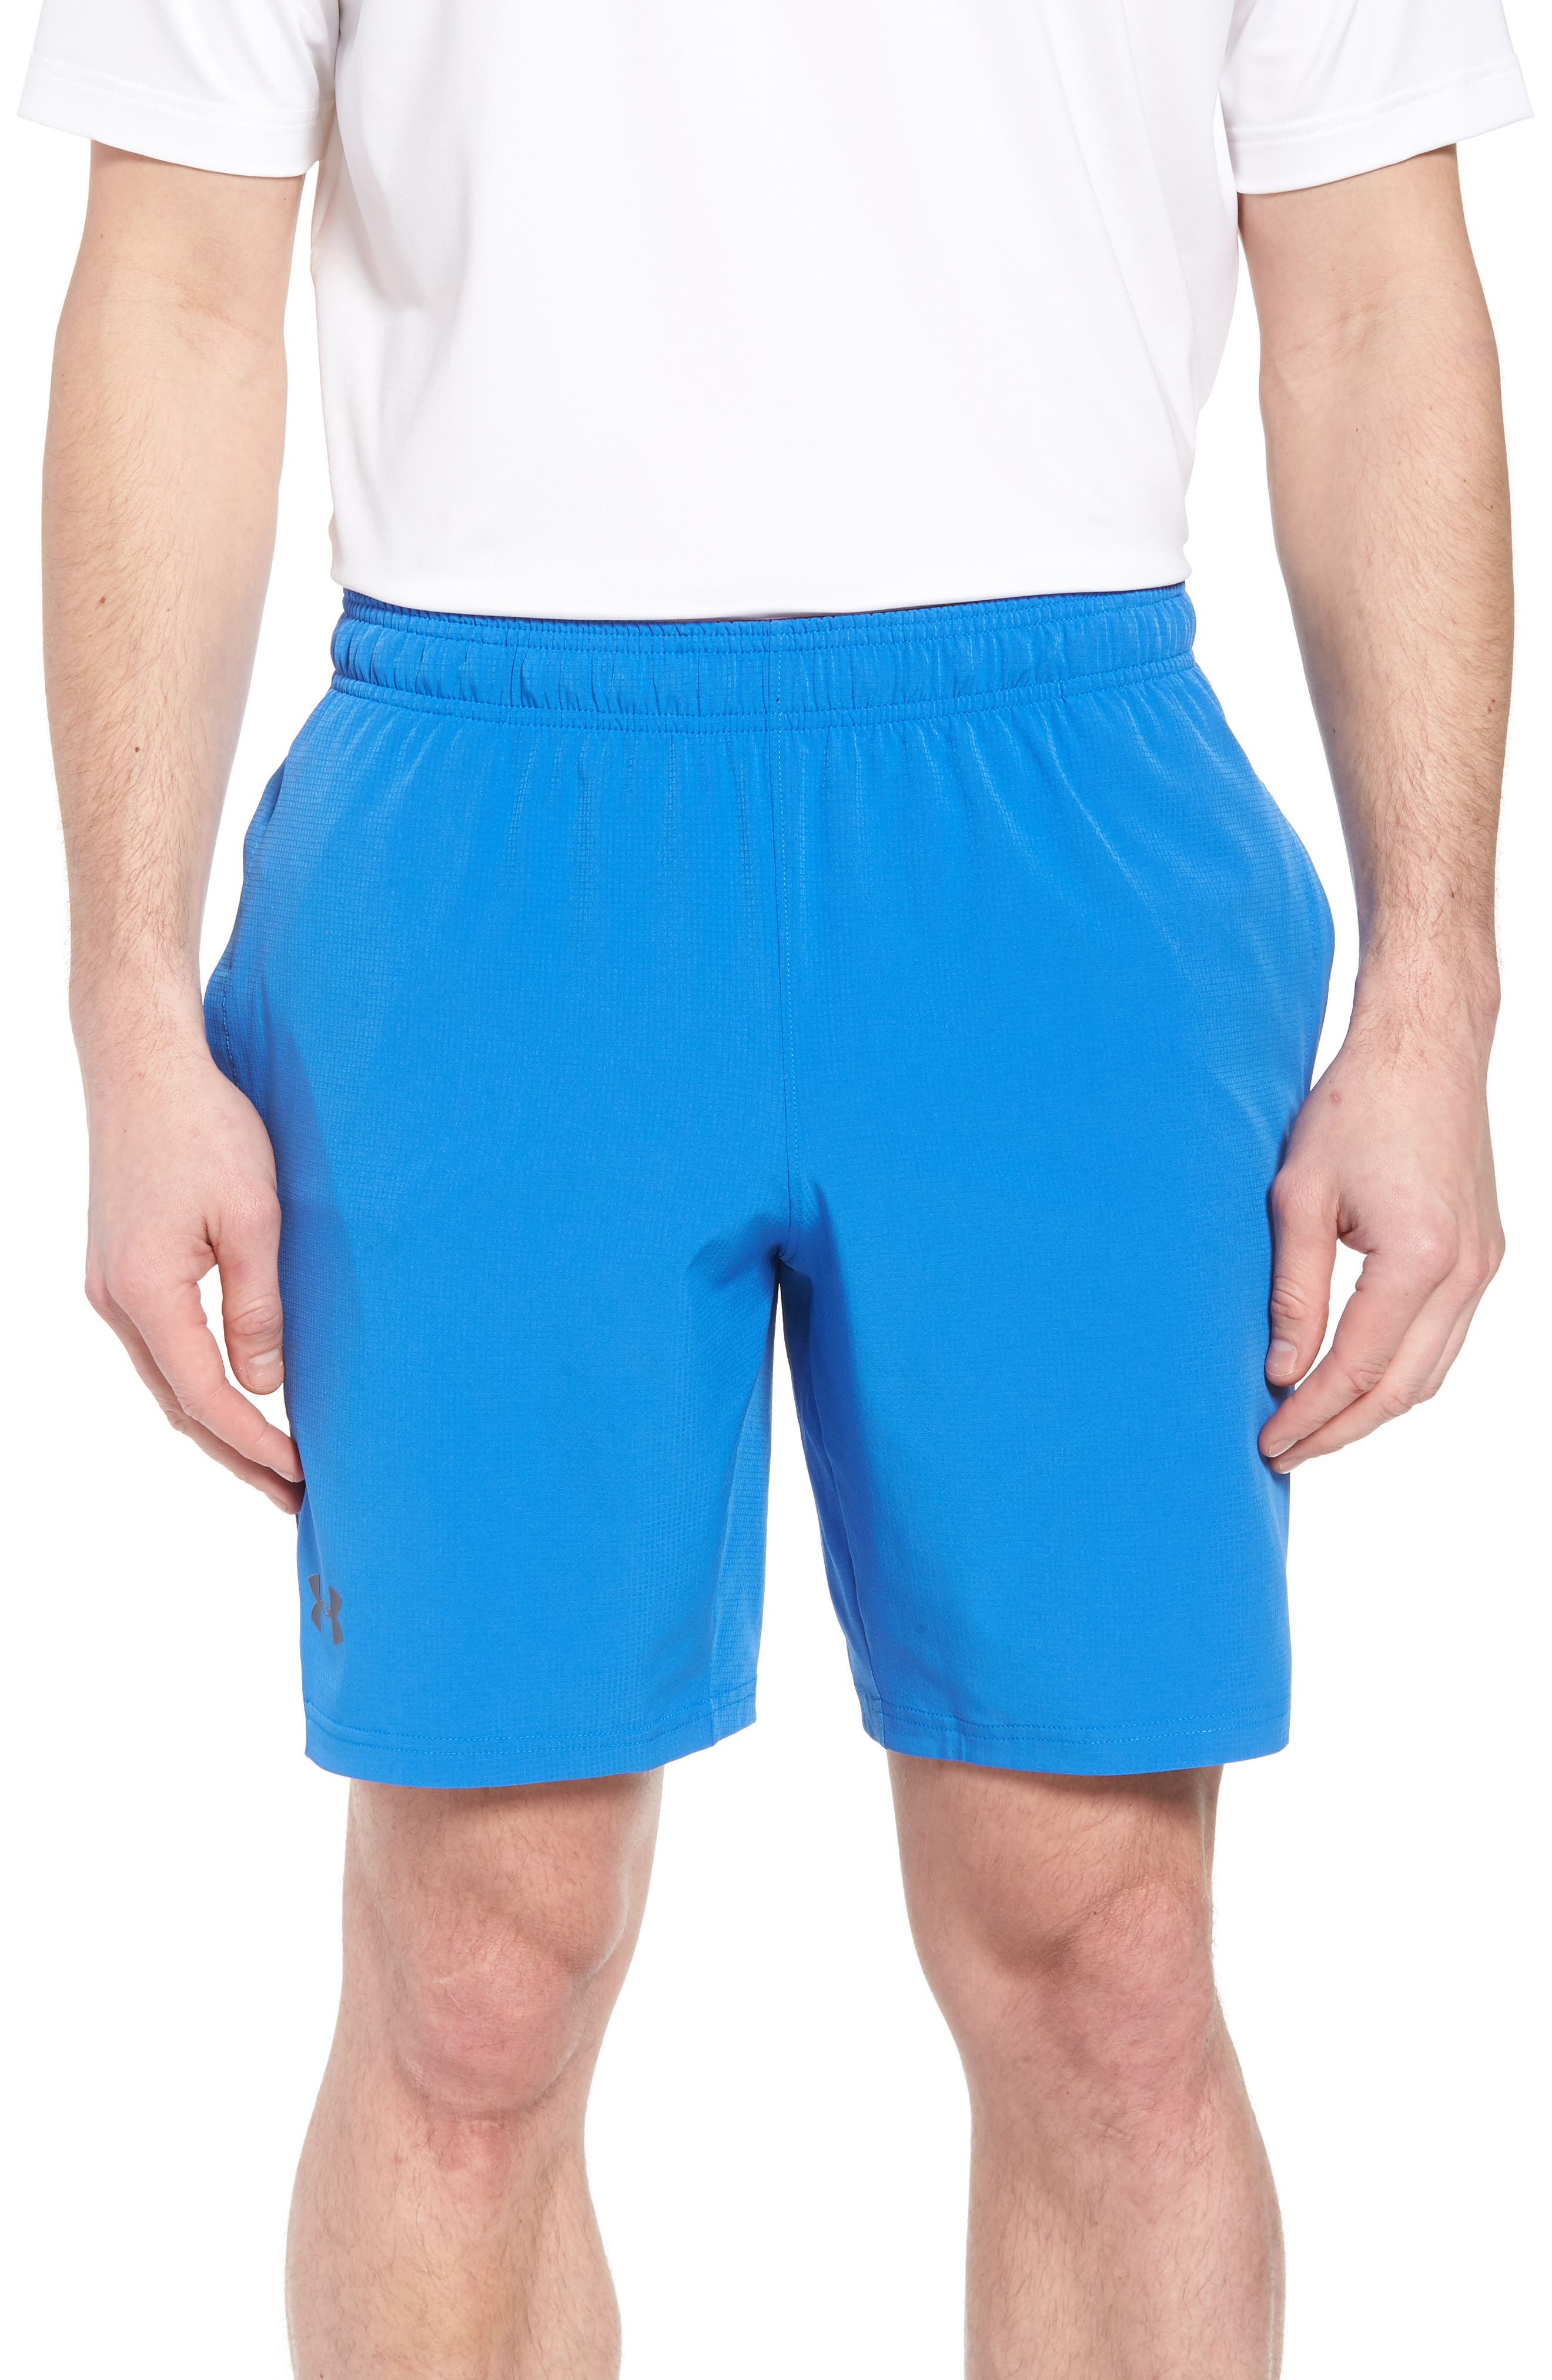 Regular Fit Cage Shorts,                             Main thumbnail 1, color,                             Mediterranean/ Graphite